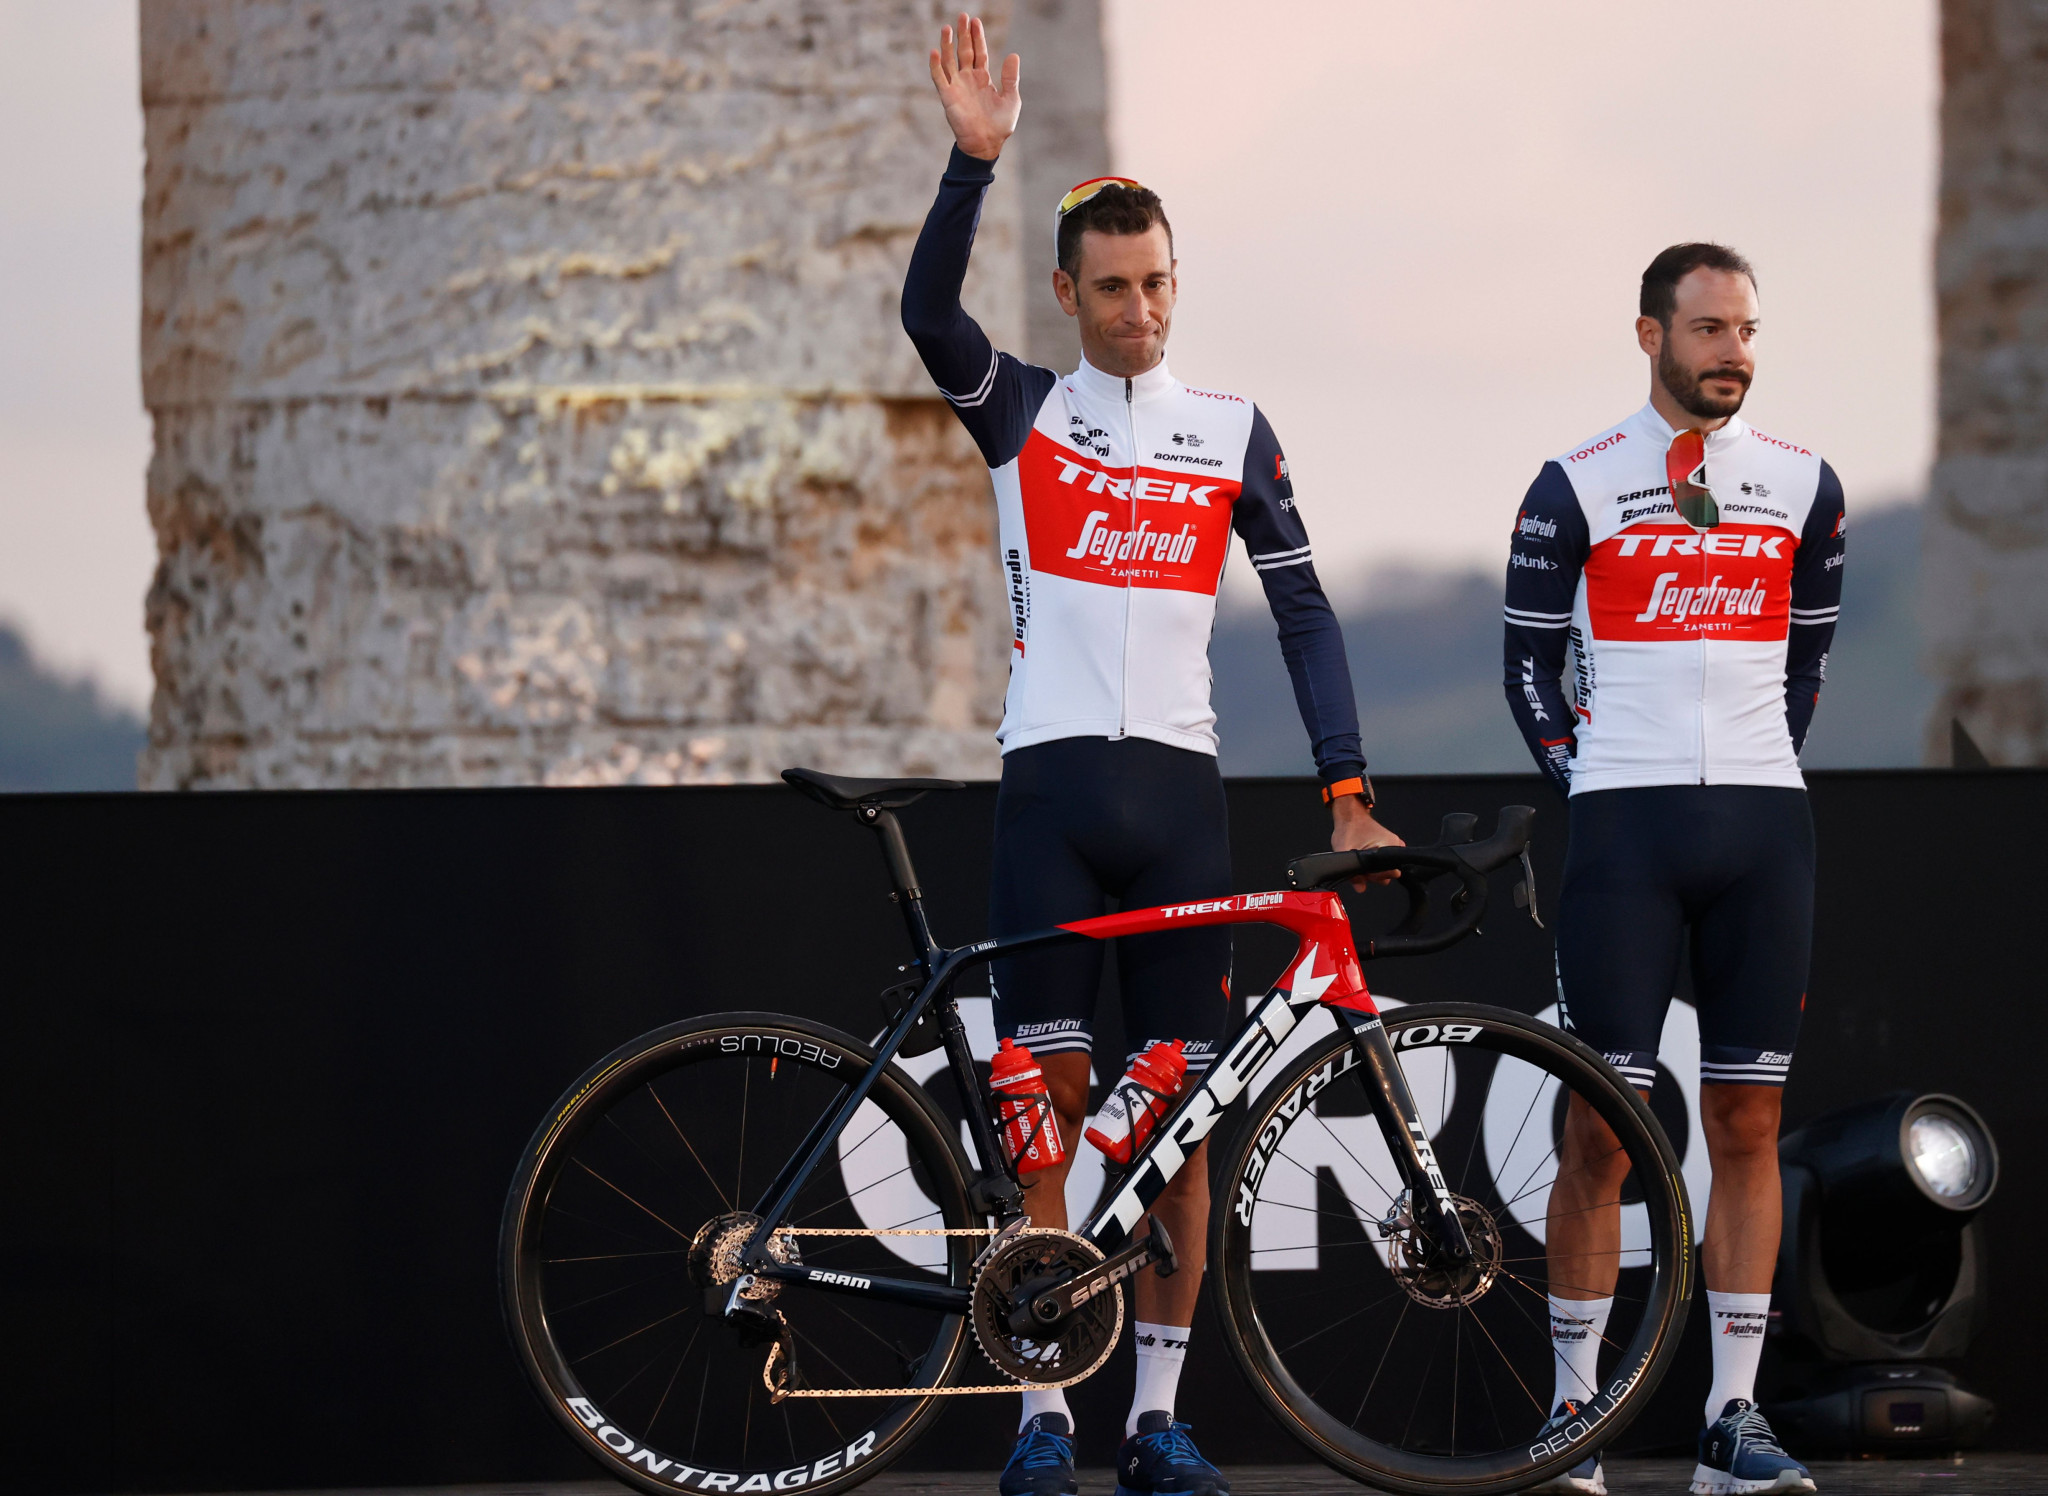 Nibali among favourites as Giro d'Italia prepares for late launch in Sicily